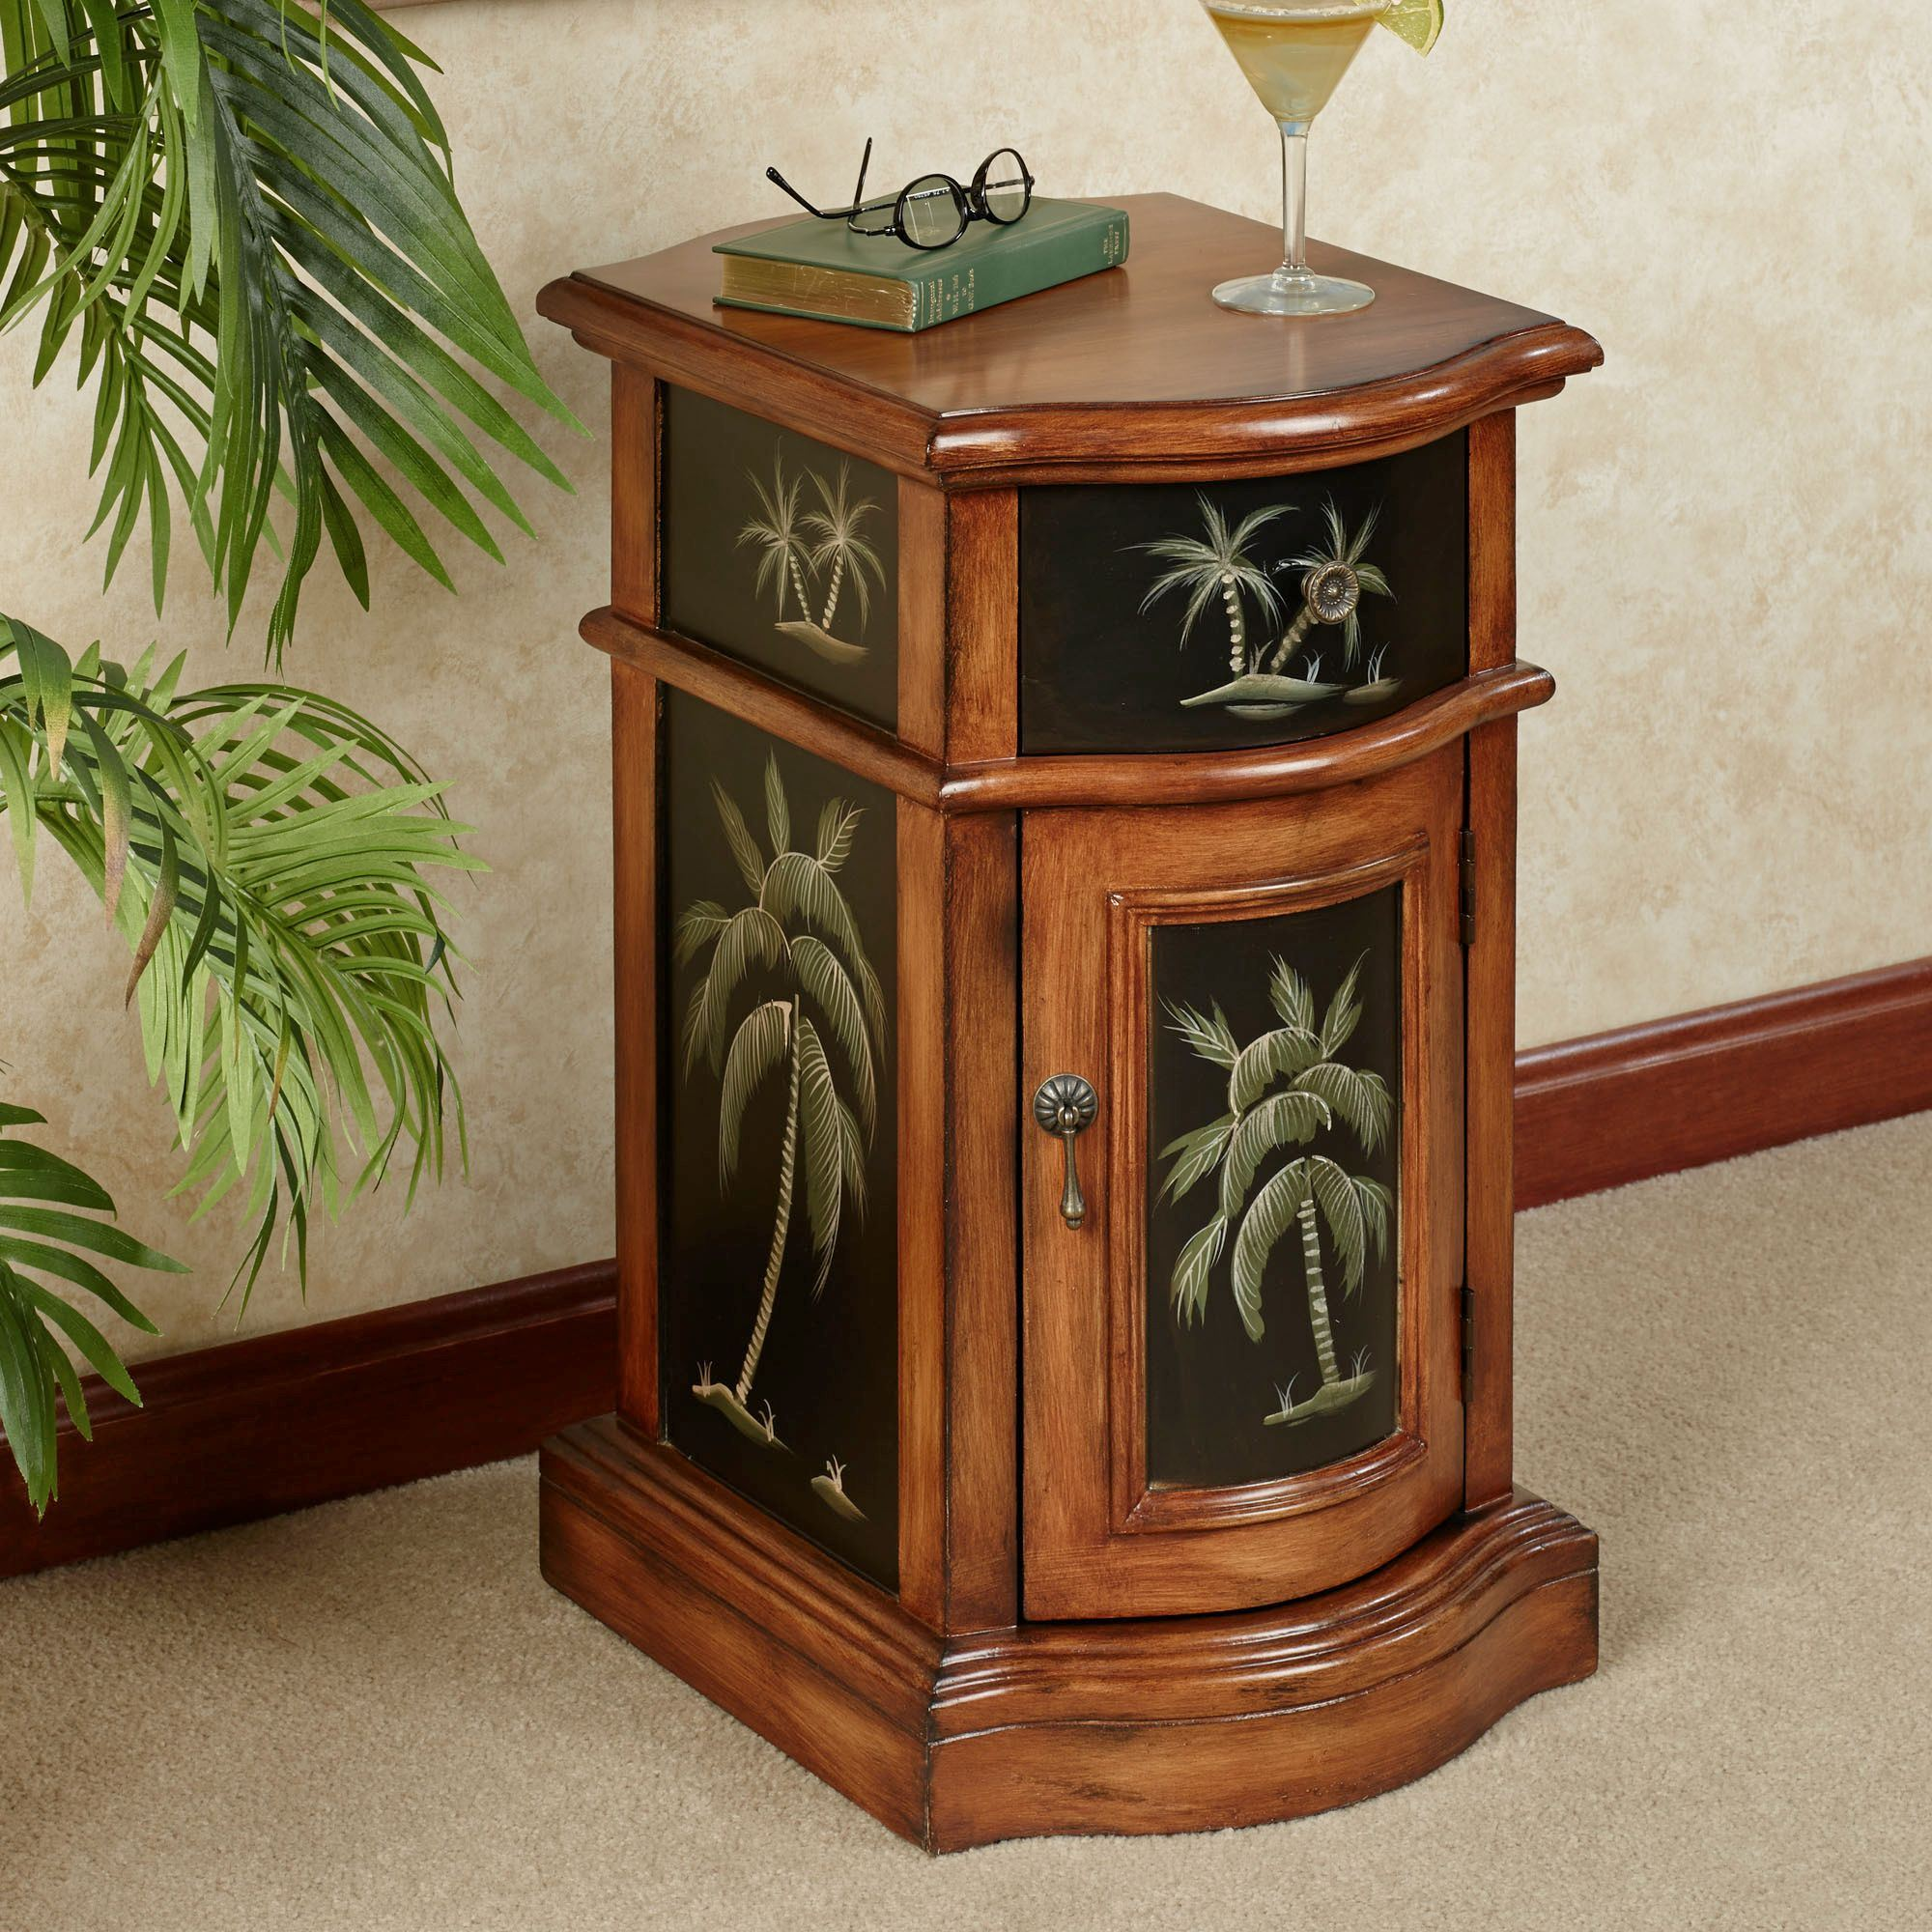 kellsie palm tree storage accent cabinet furniture autumn cherry touch zoom slide bolt inch side table outdoor console with monarch piece coffee marble bar mid century modern